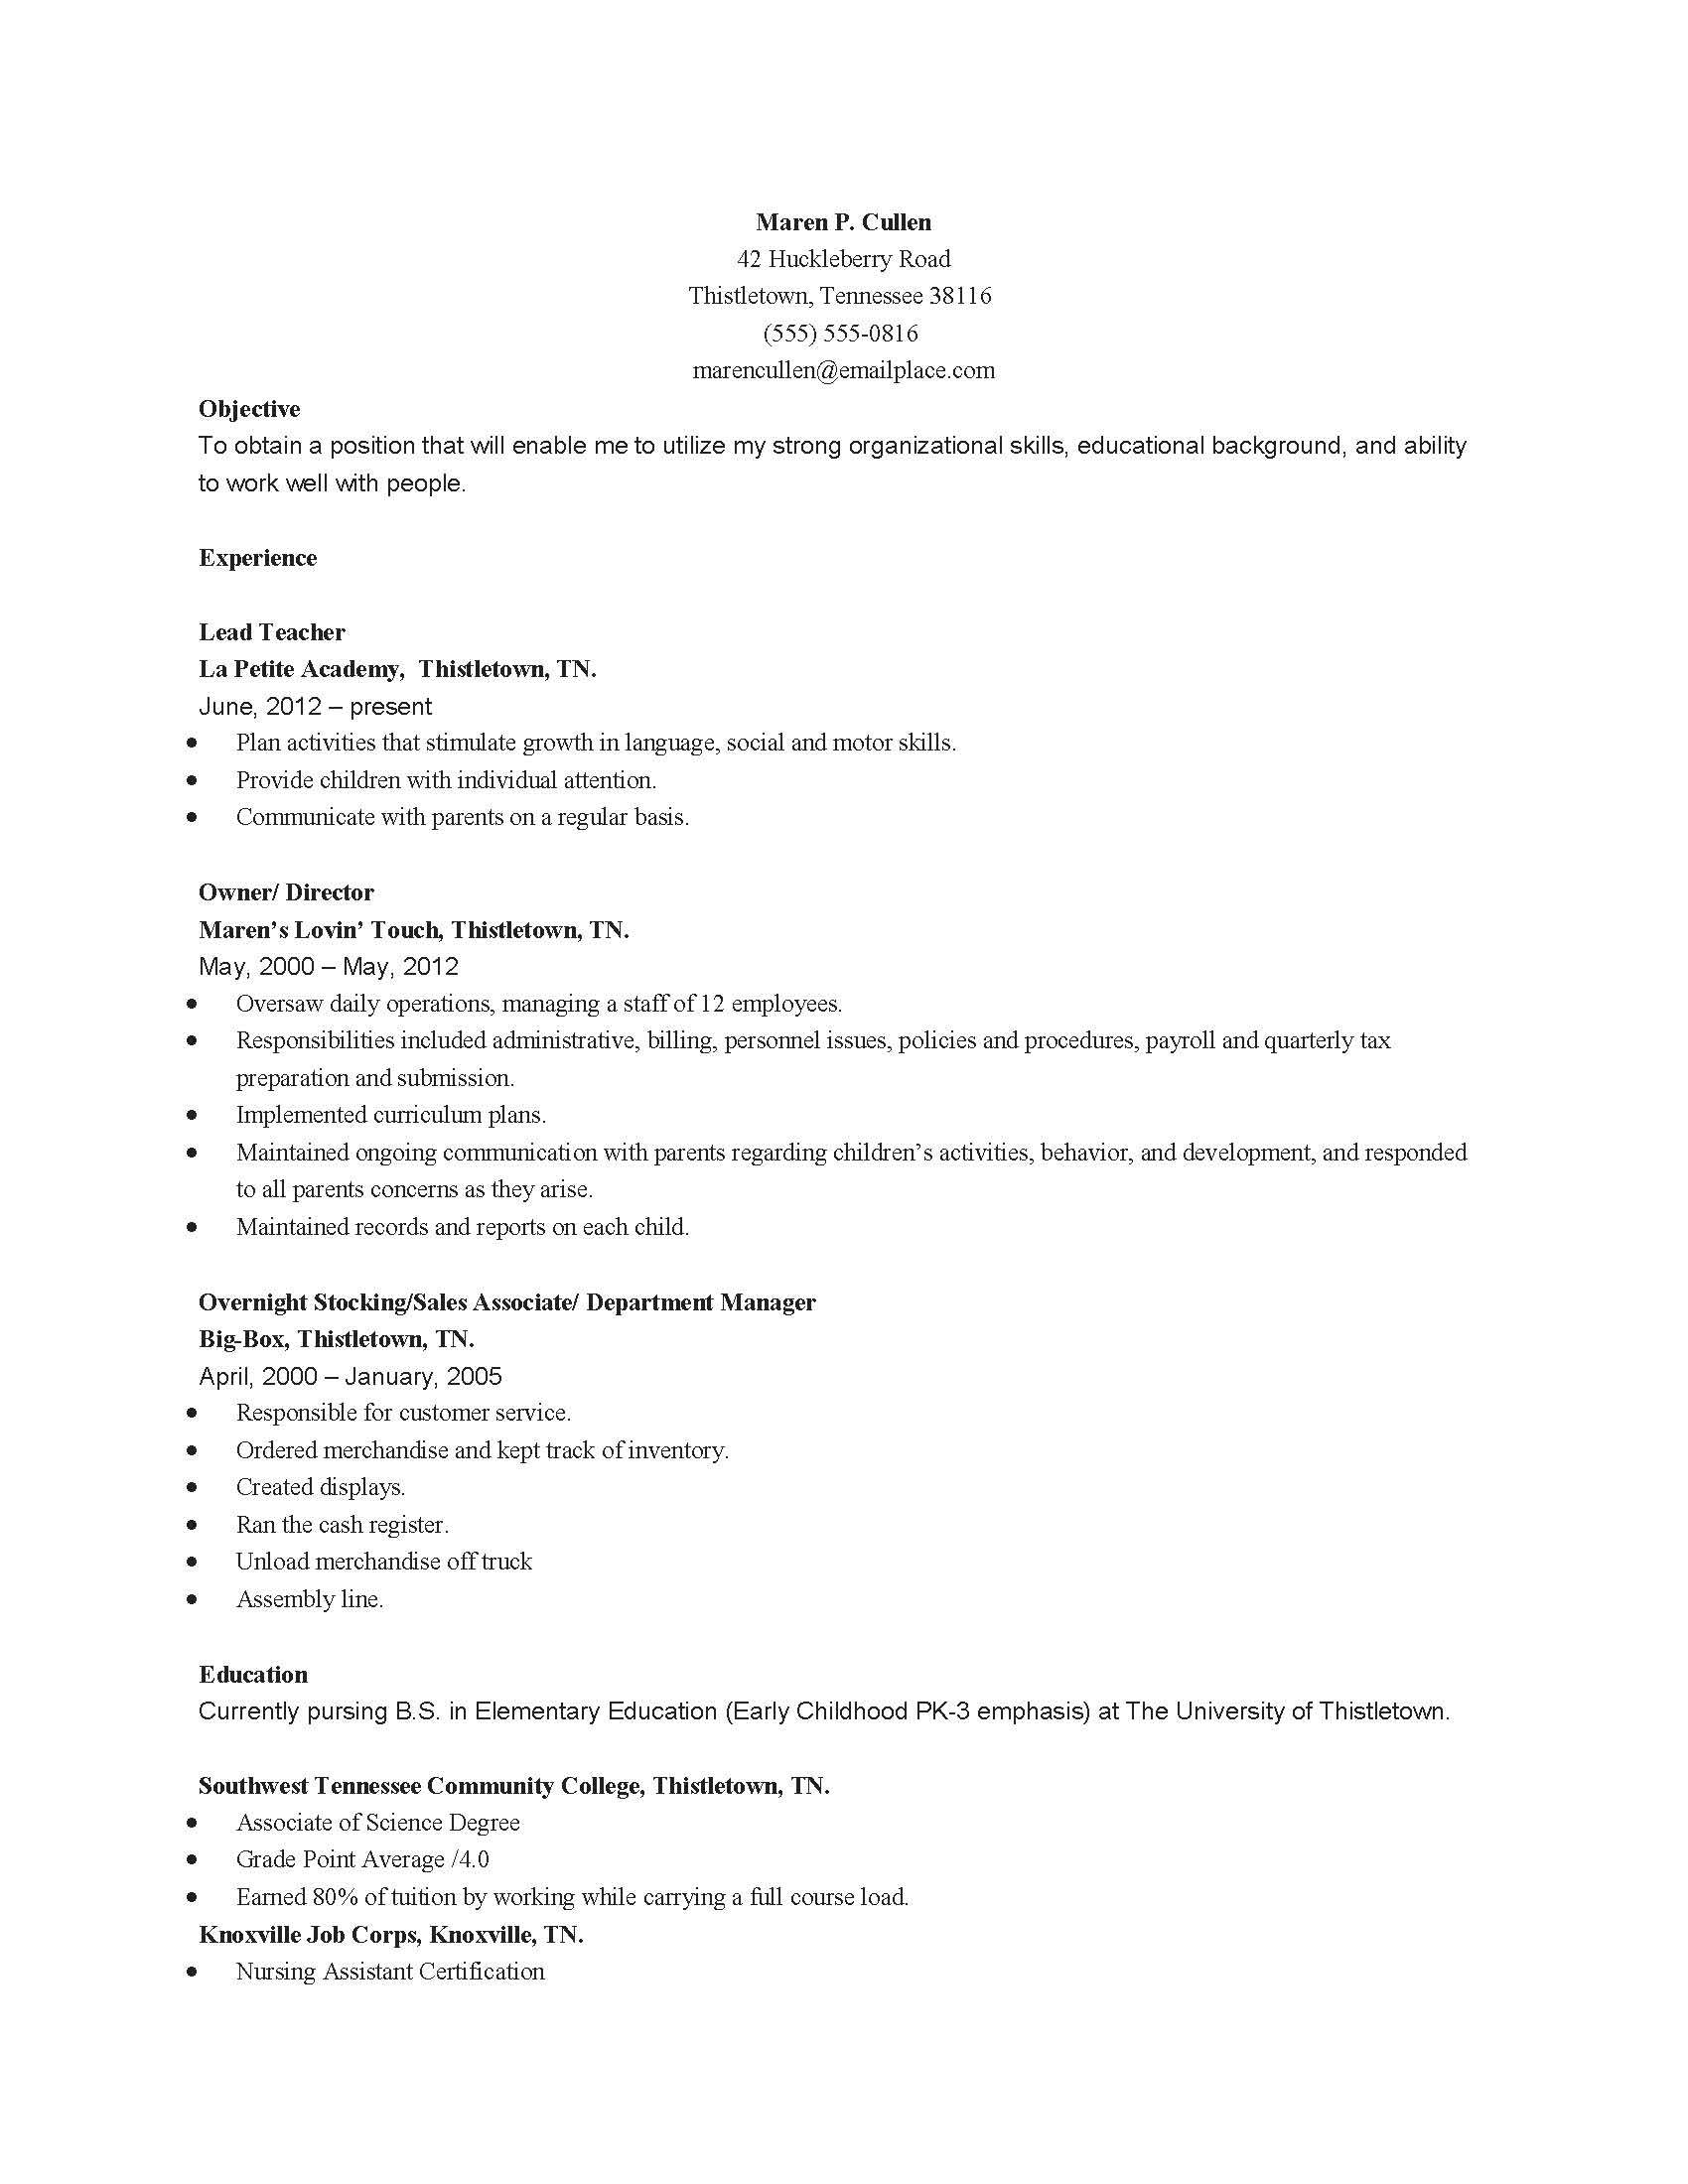 childhood education child care resume sample best examples assistant for educator Resume Early Childhood Education Assistant Resume